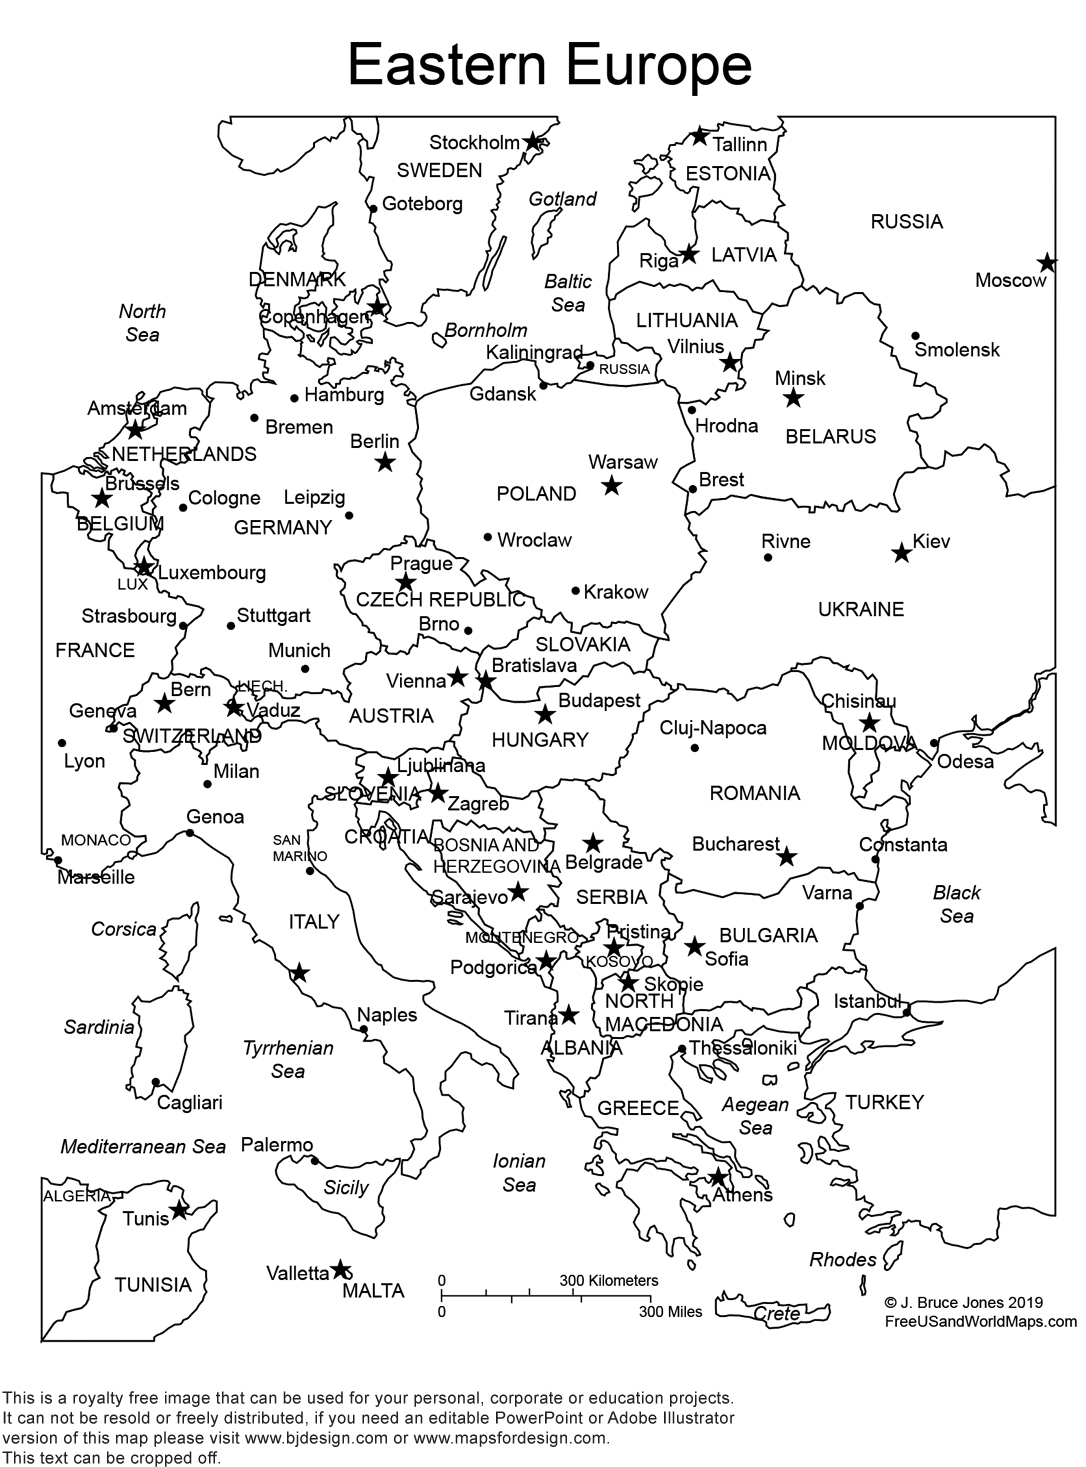 Eastern Europe Printable Outline maps, royalty free